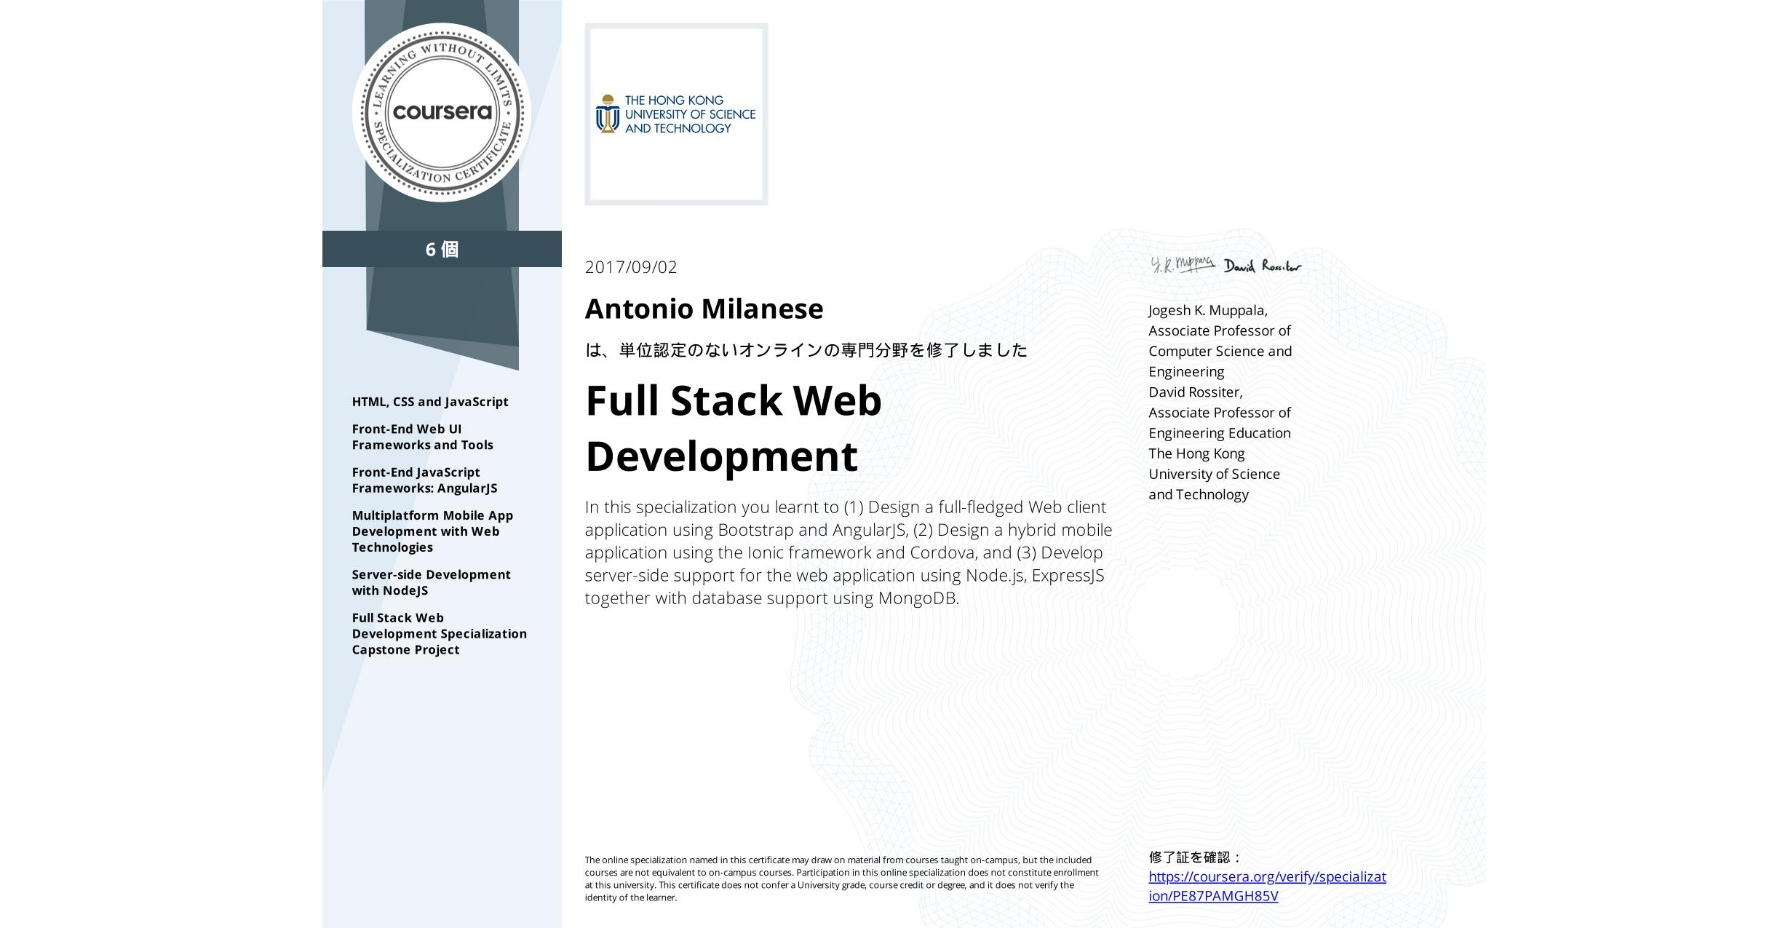 View certificate for Antonio Milanese, Full Stack Web Development, offered through Coursera. In this specialization you learnt to (1) Design a full-fledged Web client application using Bootstrap and AngularJS, (2) Design a hybrid mobile application using the Ionic framework and Cordova, and (3) Develop server-side support for the web application using Node.js, ExpressJS together with database support using MongoDB.